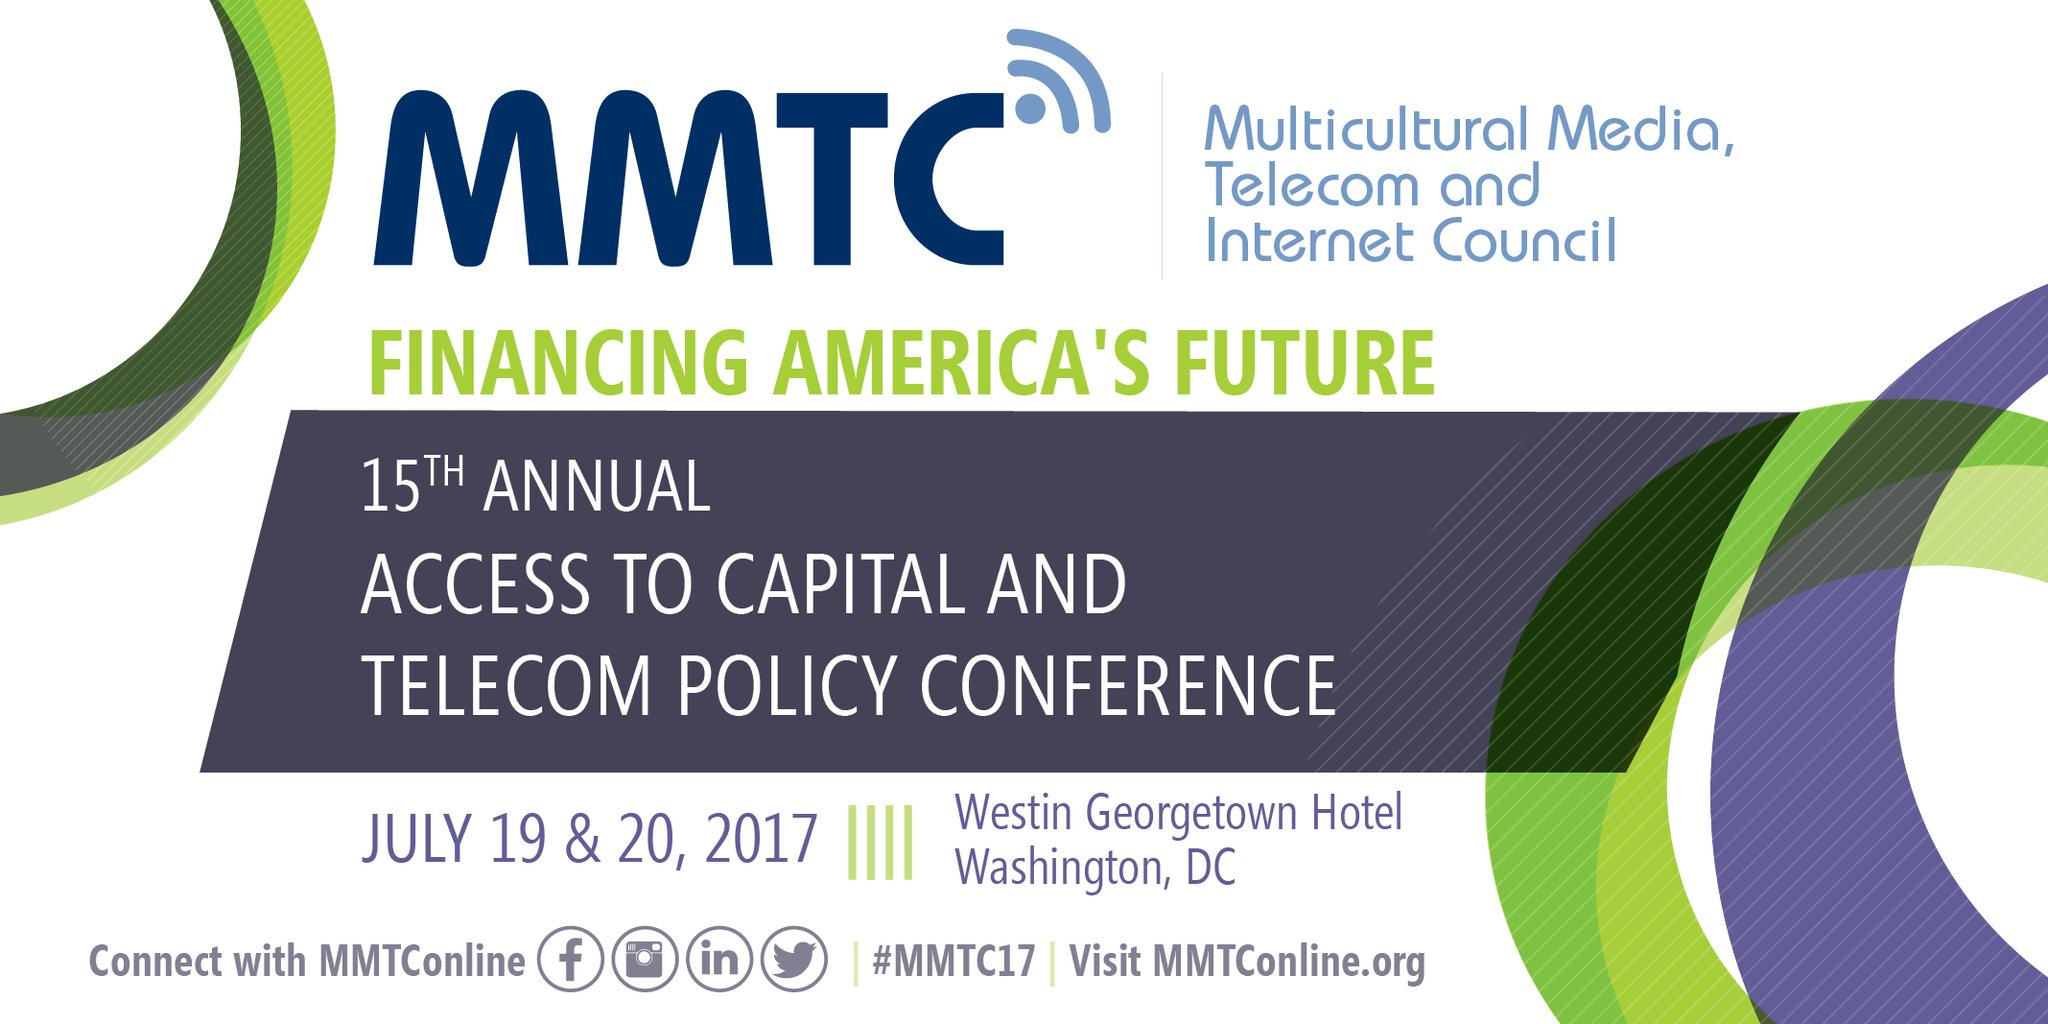 Thumbnail for 2017 Access to Capital and Telecom Policy Conference